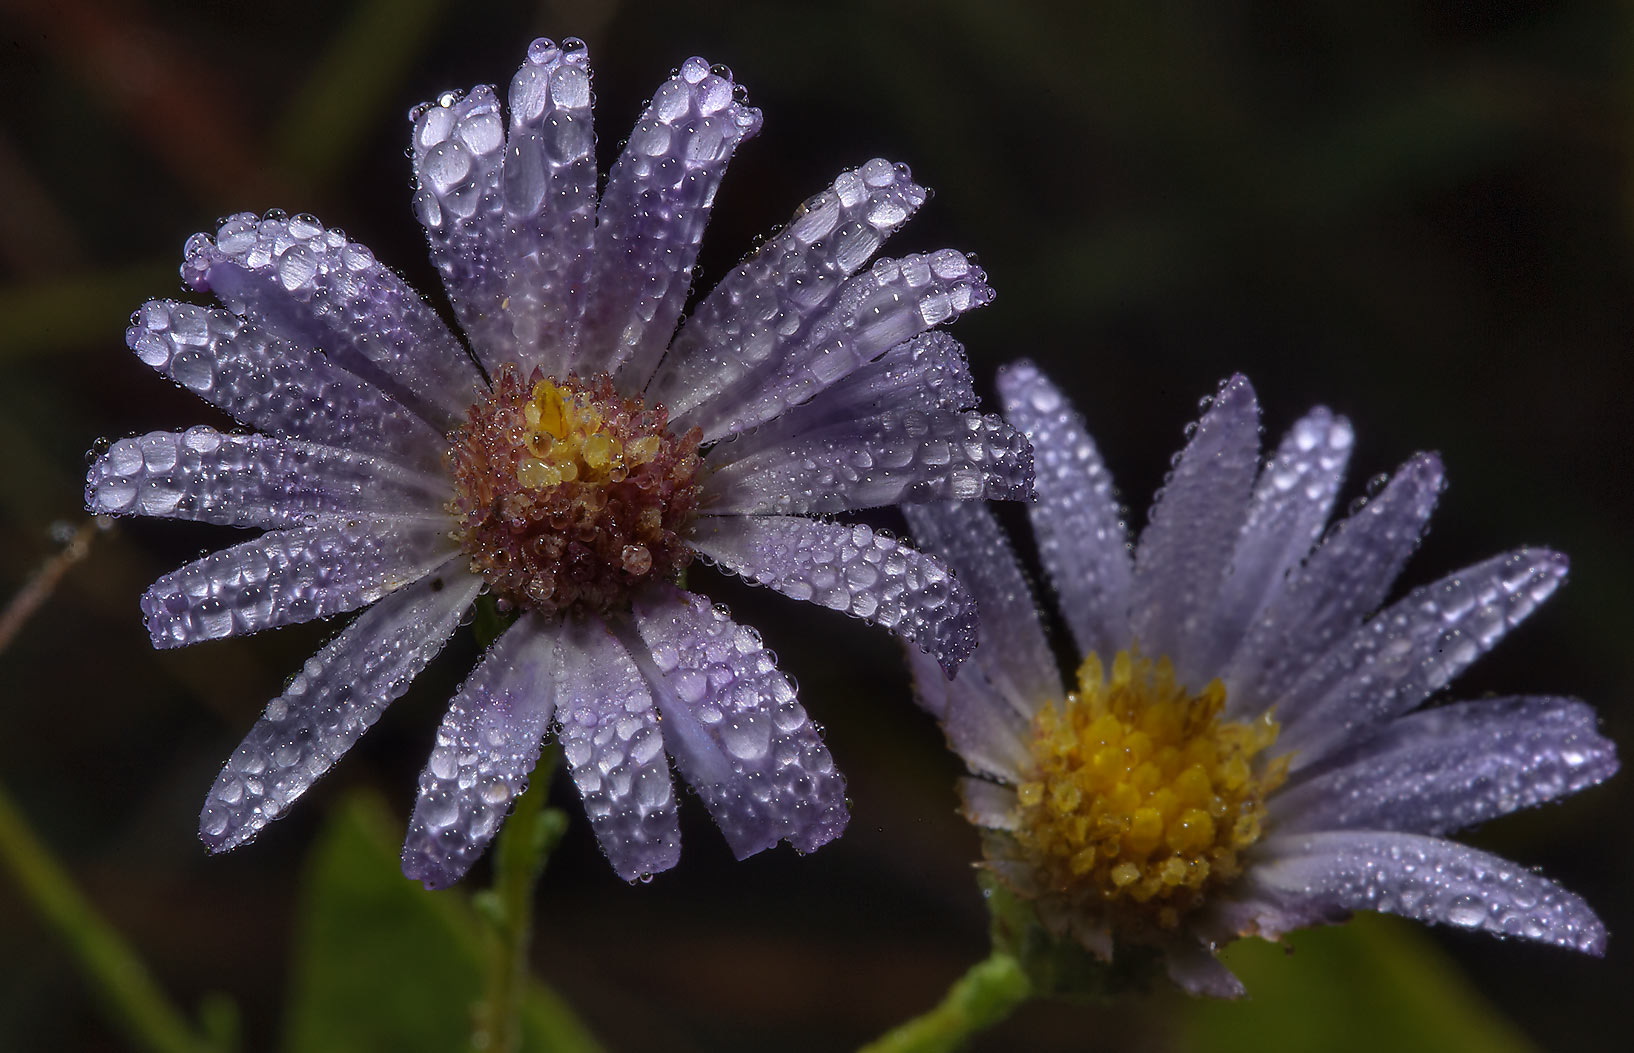 Blue aster flowers in dew on Moore's Hill Outcrop at FM Rd. 3090 near Navasota. Texas